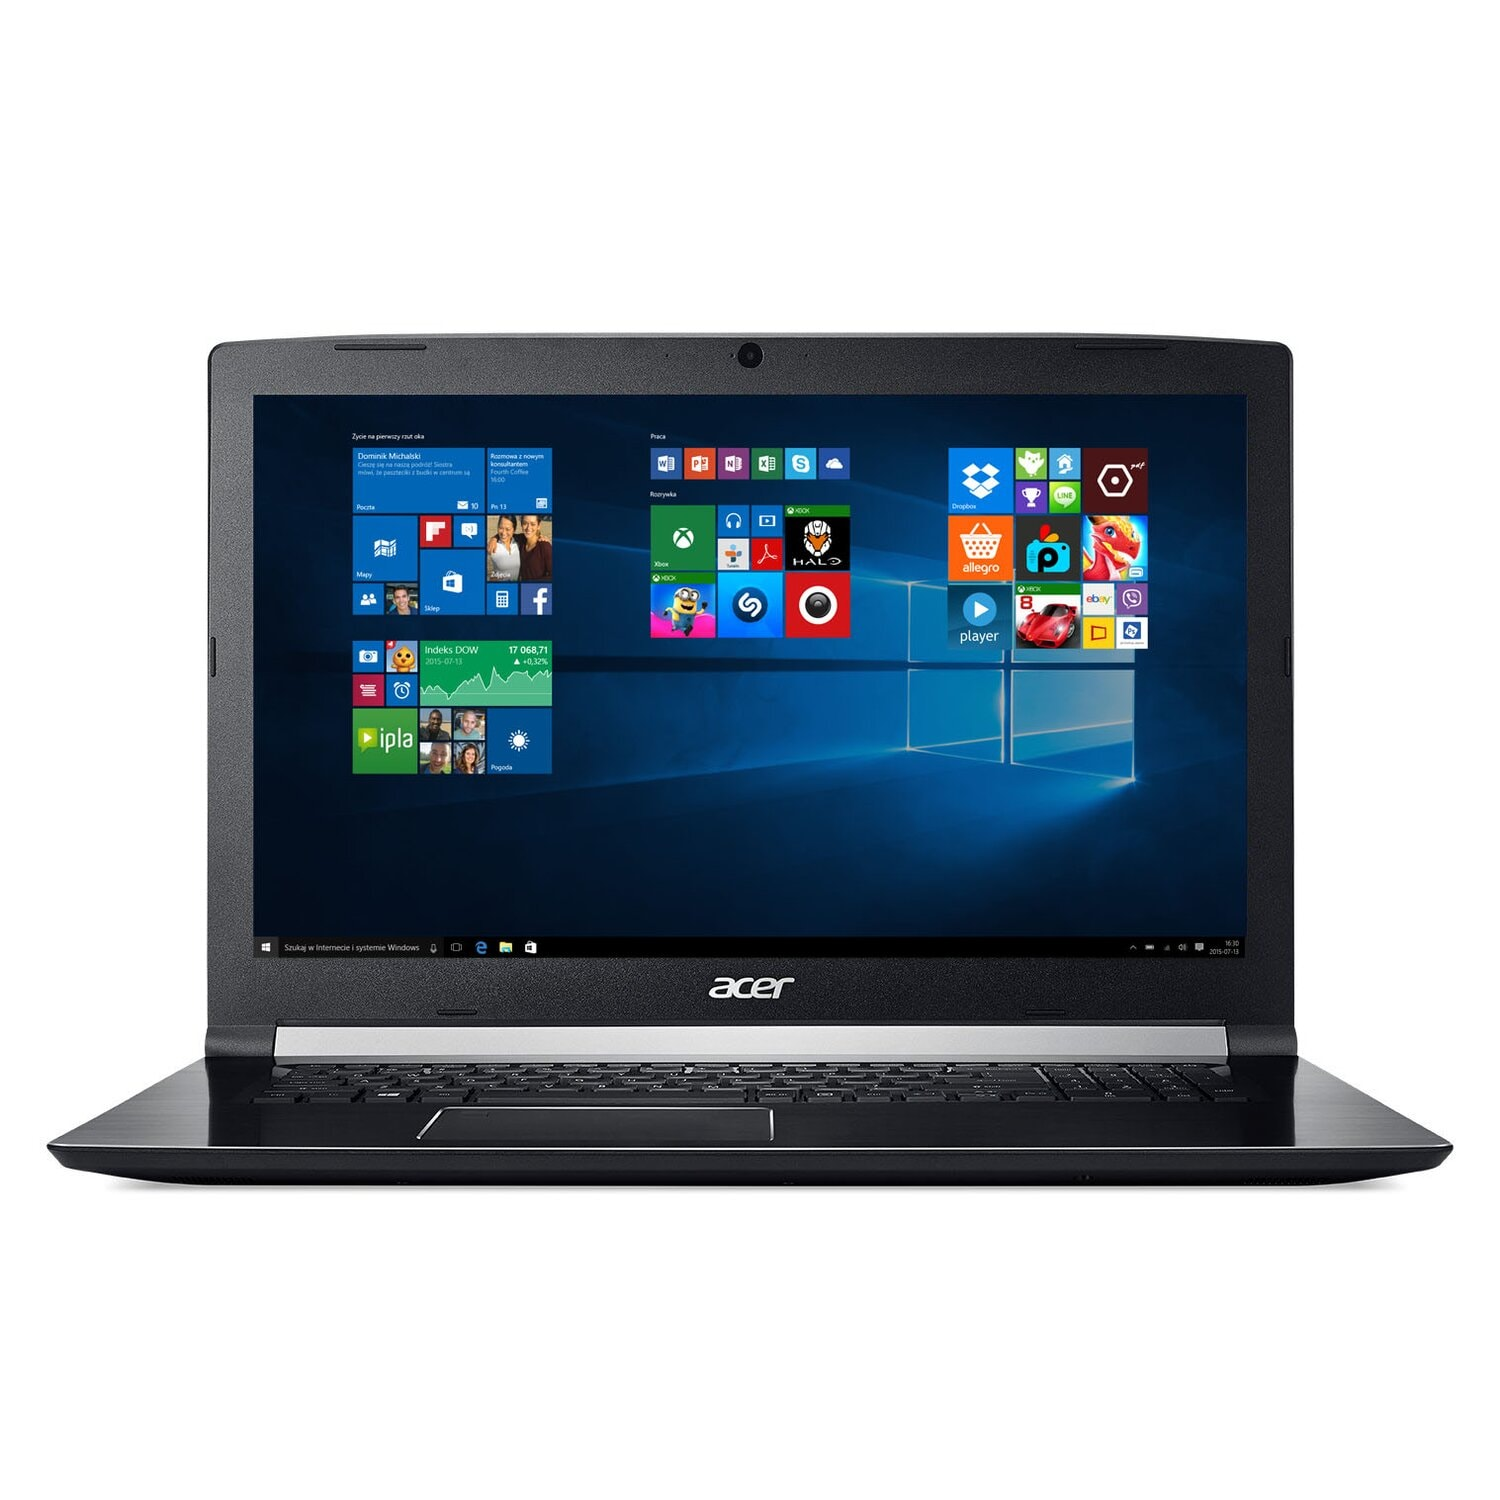 Laptop ACER Aspire 7 A717-71G-54ED i5-7300HQ/8GB/128GB SSD+1TB/GTX1050/Win10H